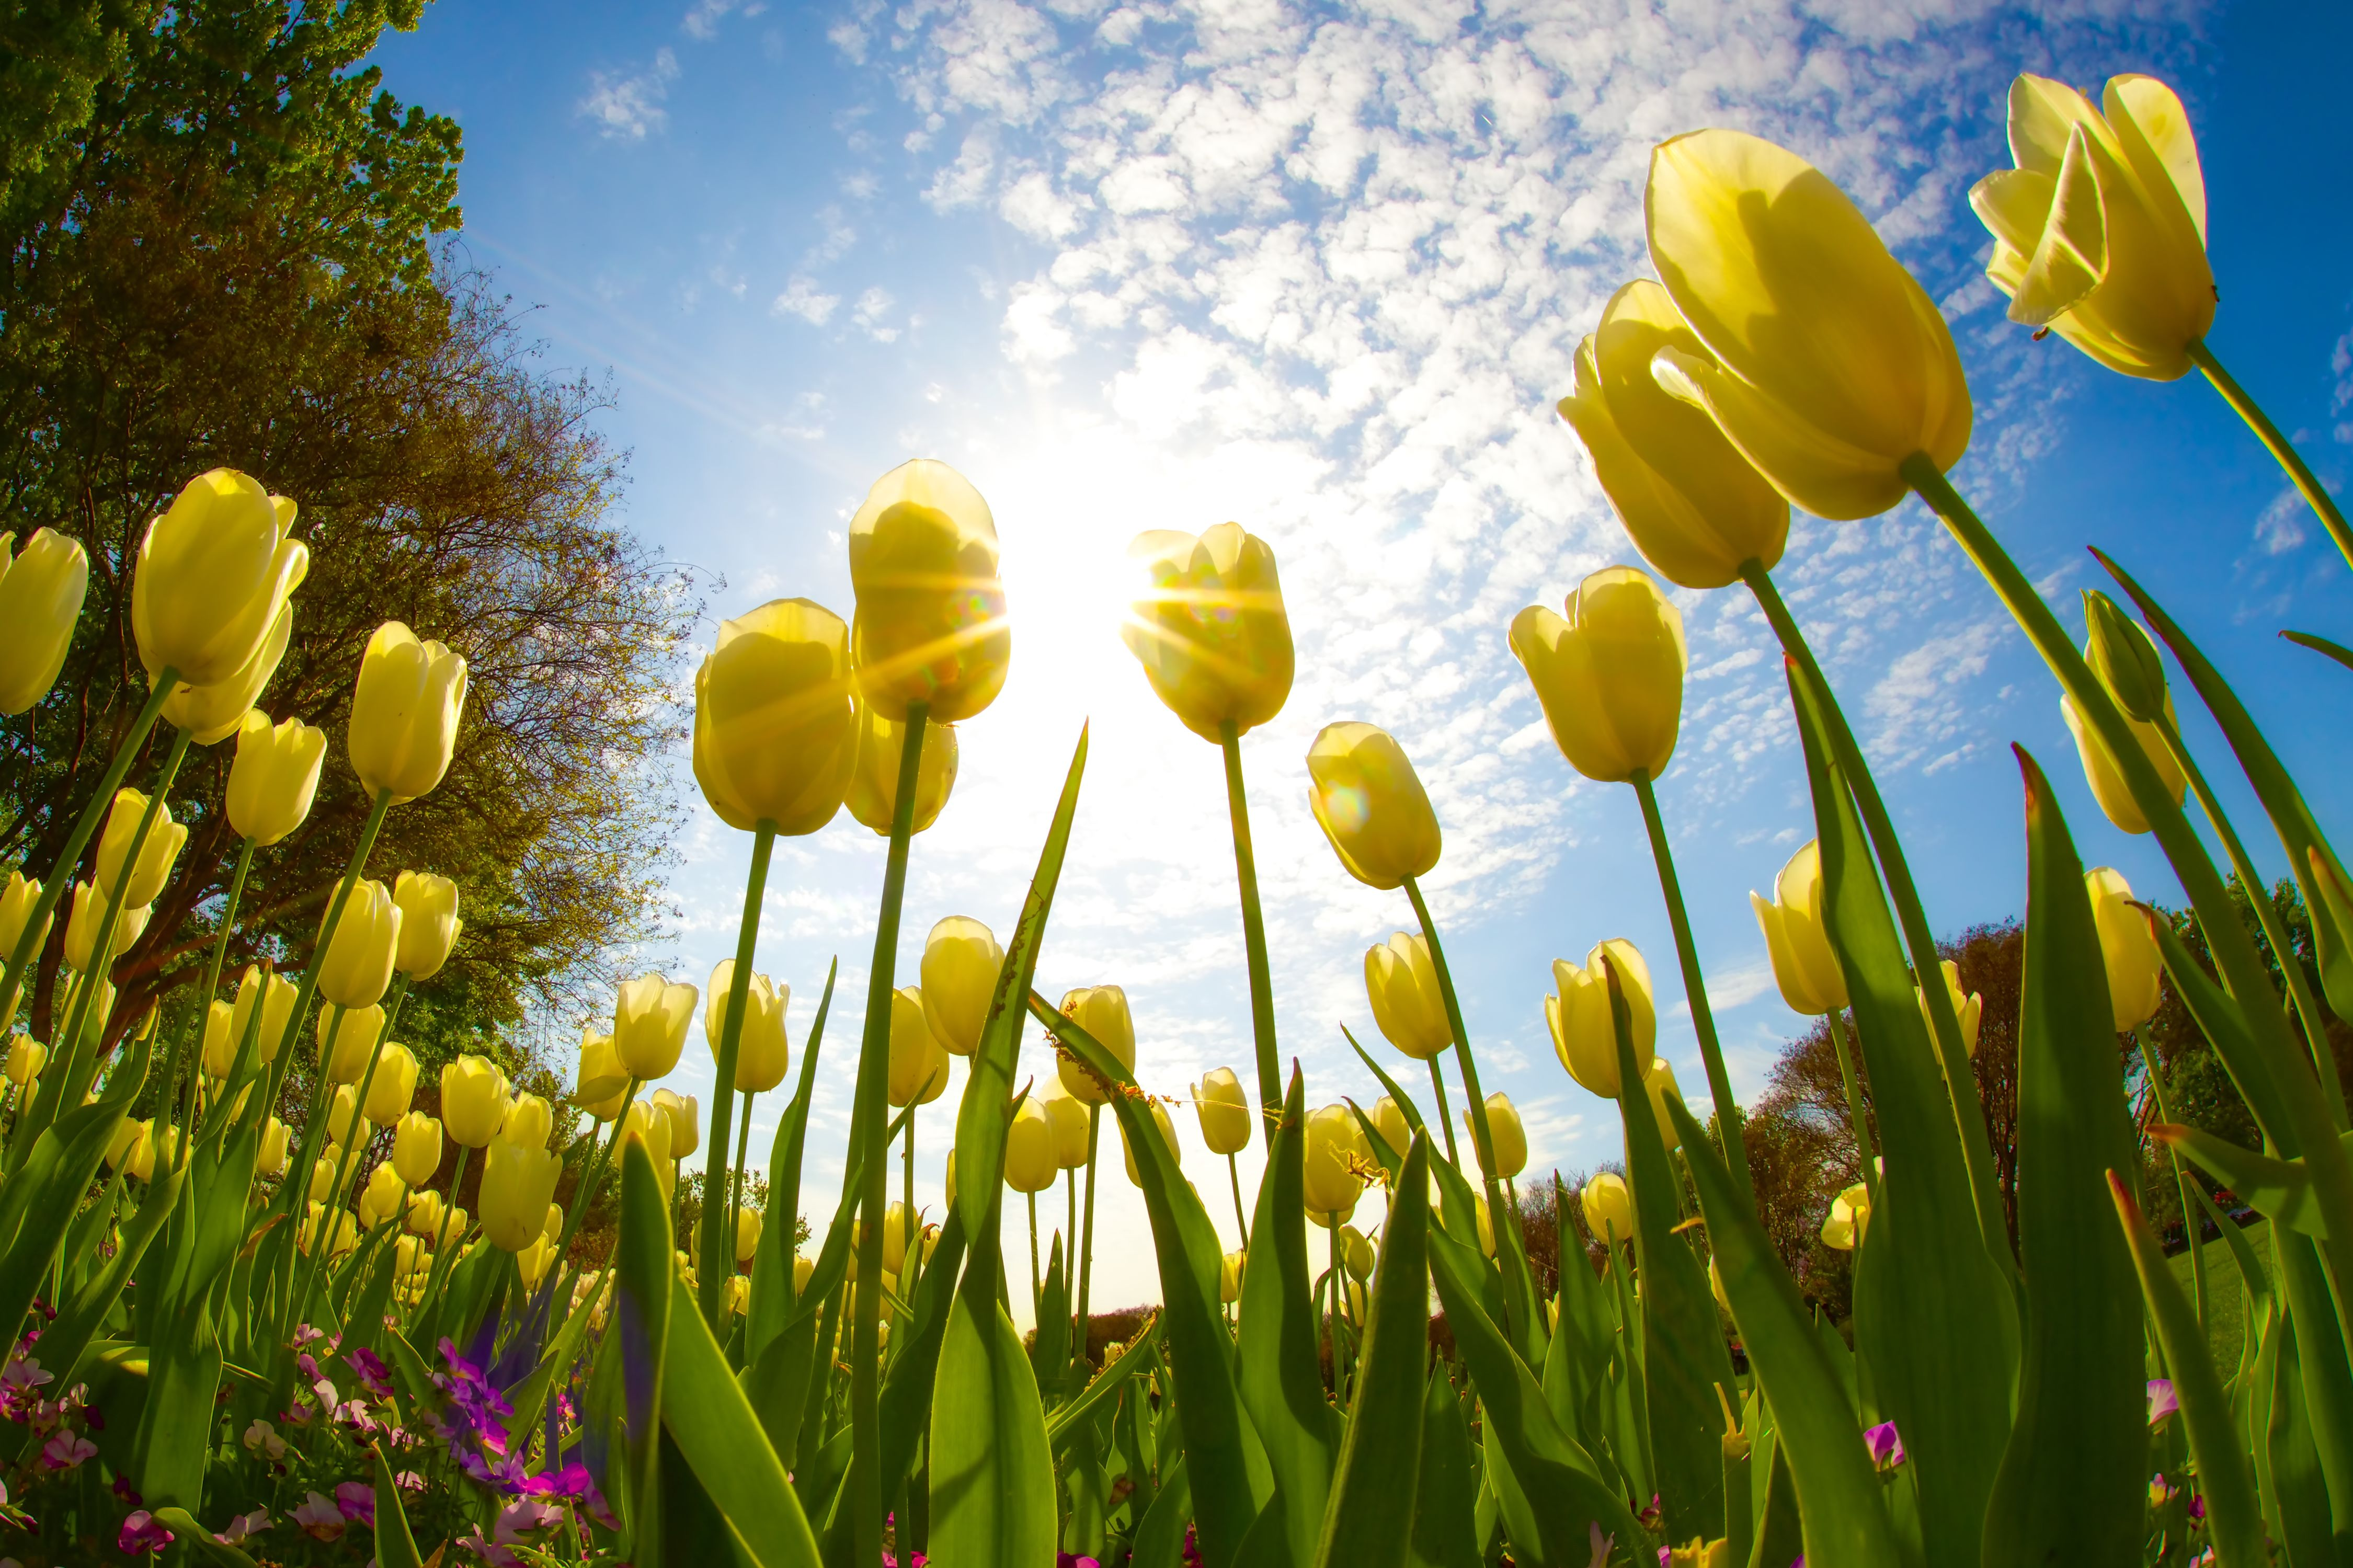 A Sprawling Tulip Field Is Coming to the San Antonio Area Next Spring